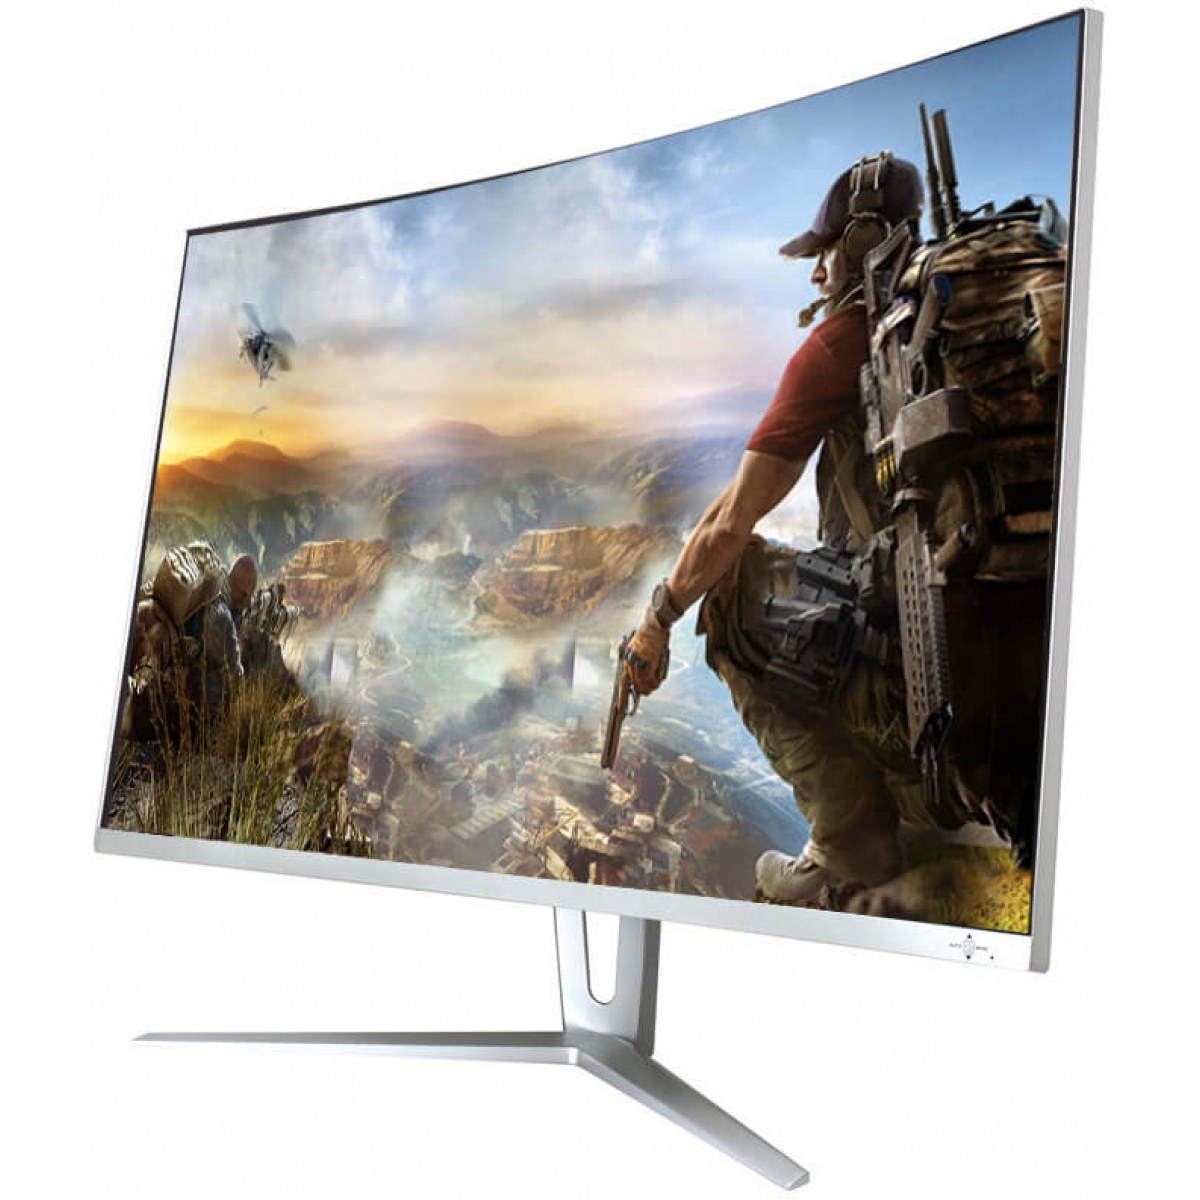 Monitor Gamer GameMax 27 Pol Curvo, Full HD, 144Hz, 1ms, White, GMX27C144